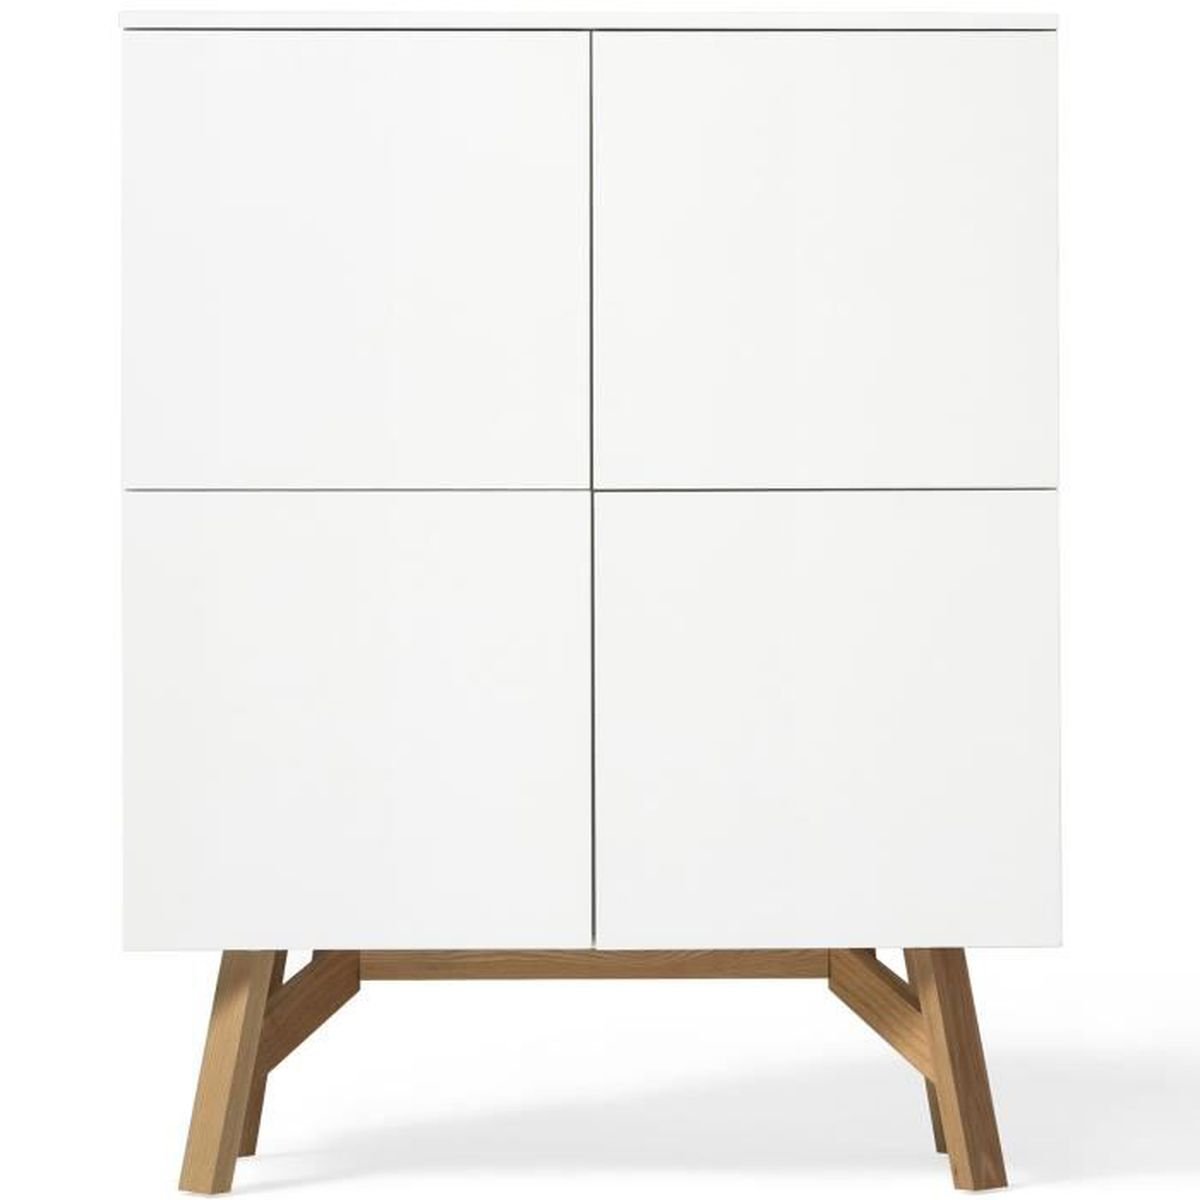 buffet haut design scandinave tycka blanc et pied en fr ne 110cm x 139cm achat vente buffet. Black Bedroom Furniture Sets. Home Design Ideas